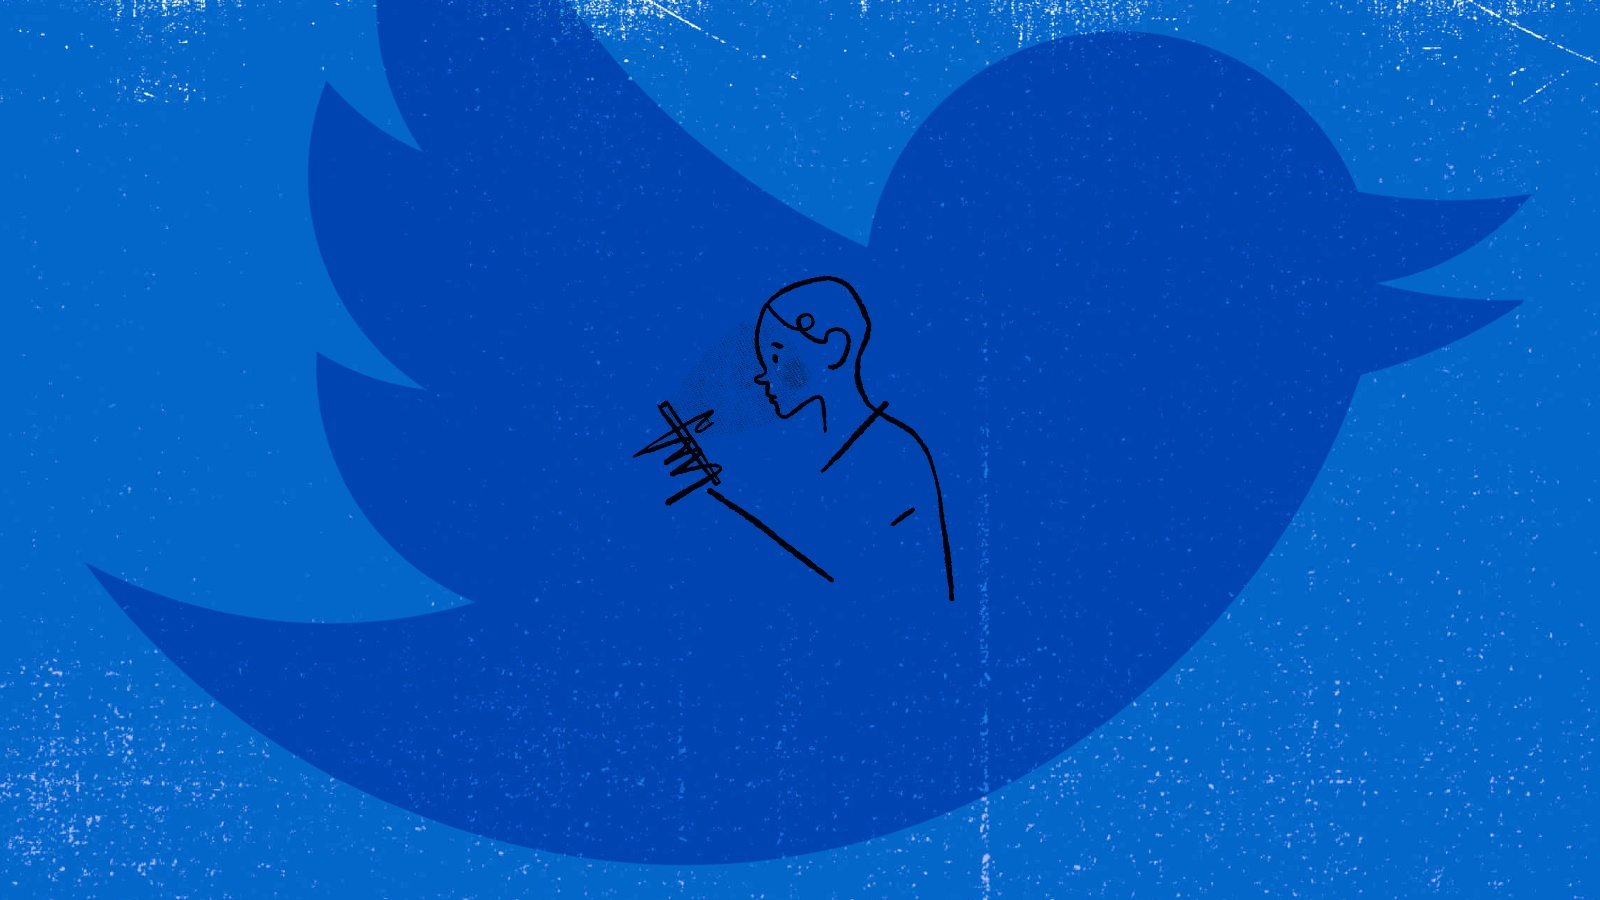 Twitter adds Safety Mode to automatically block online harassment